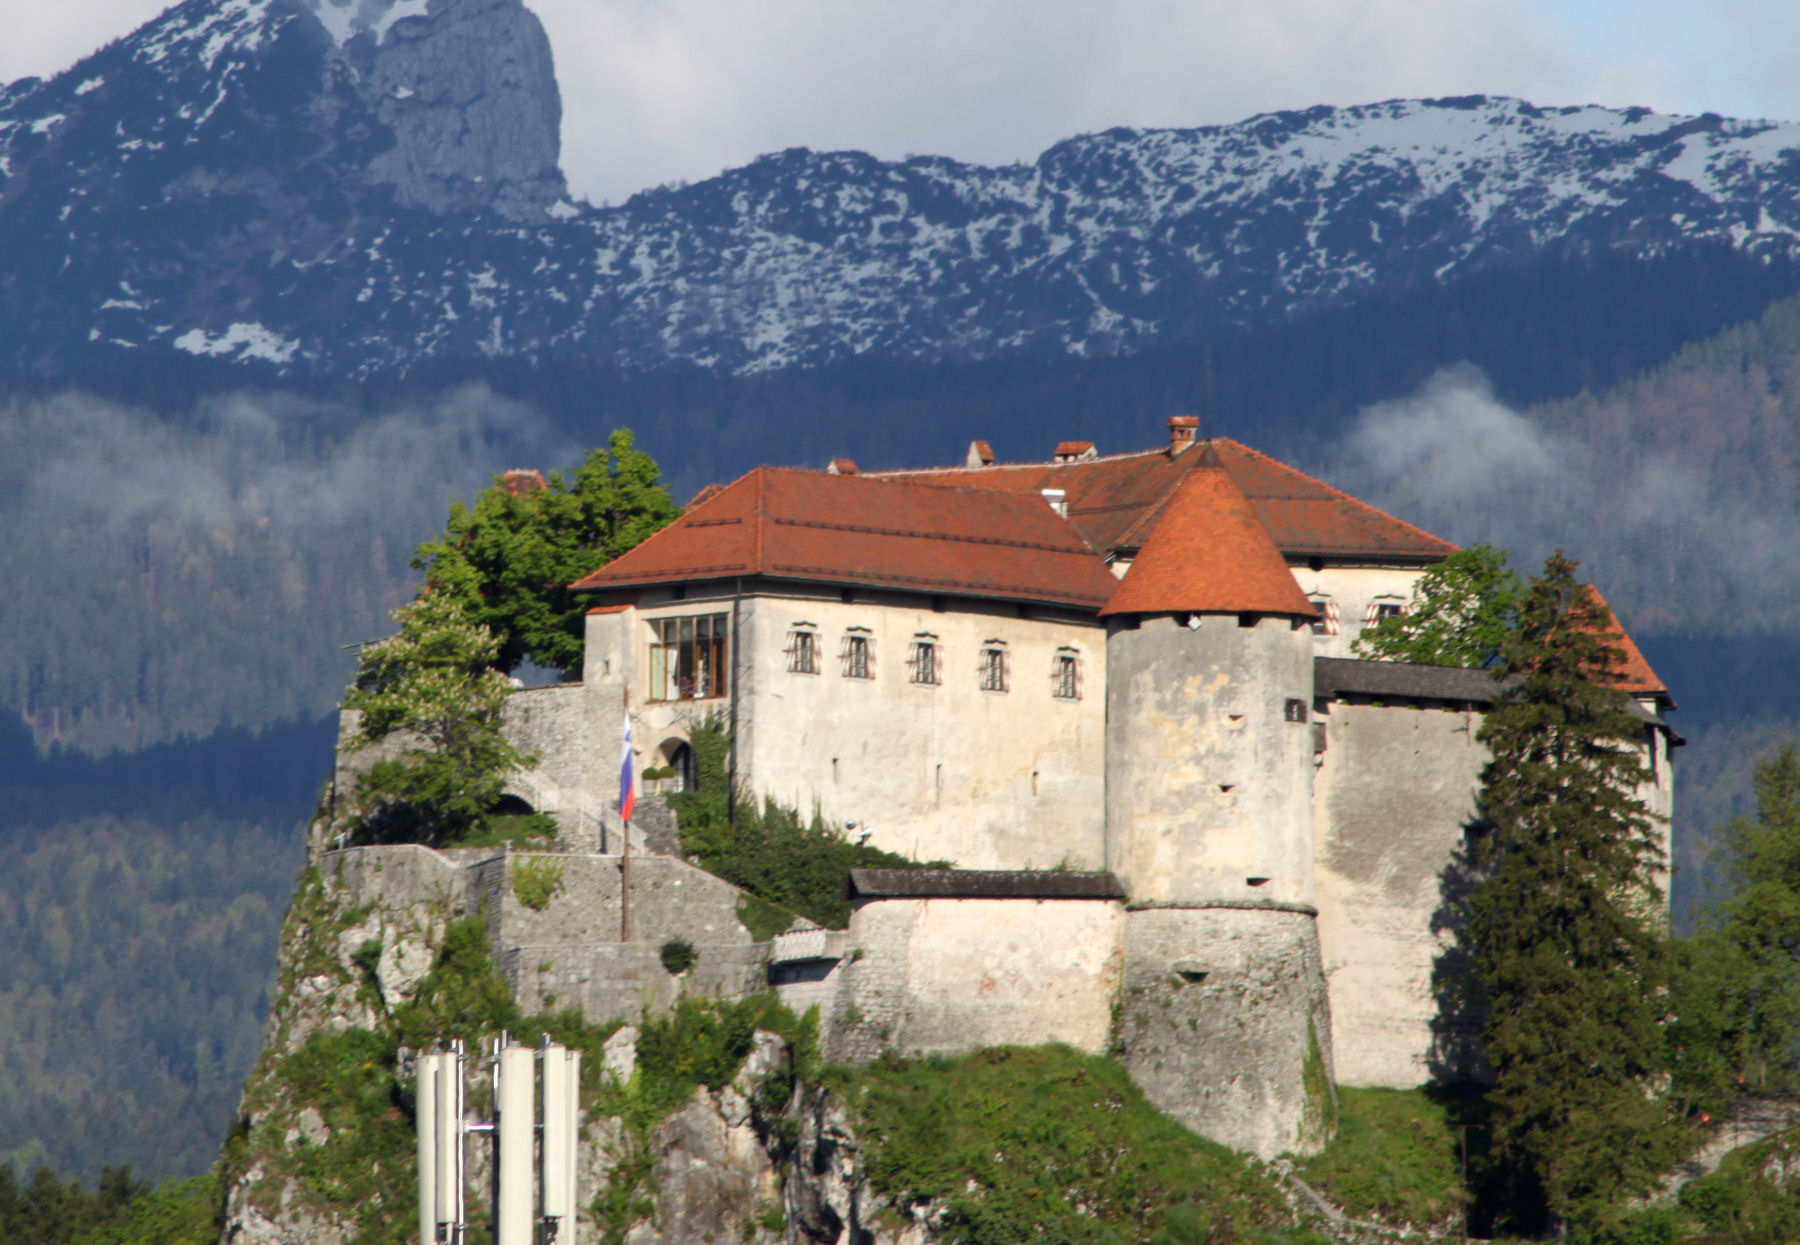 Bled Castle looks like how most people imagine a medieval fortress to be